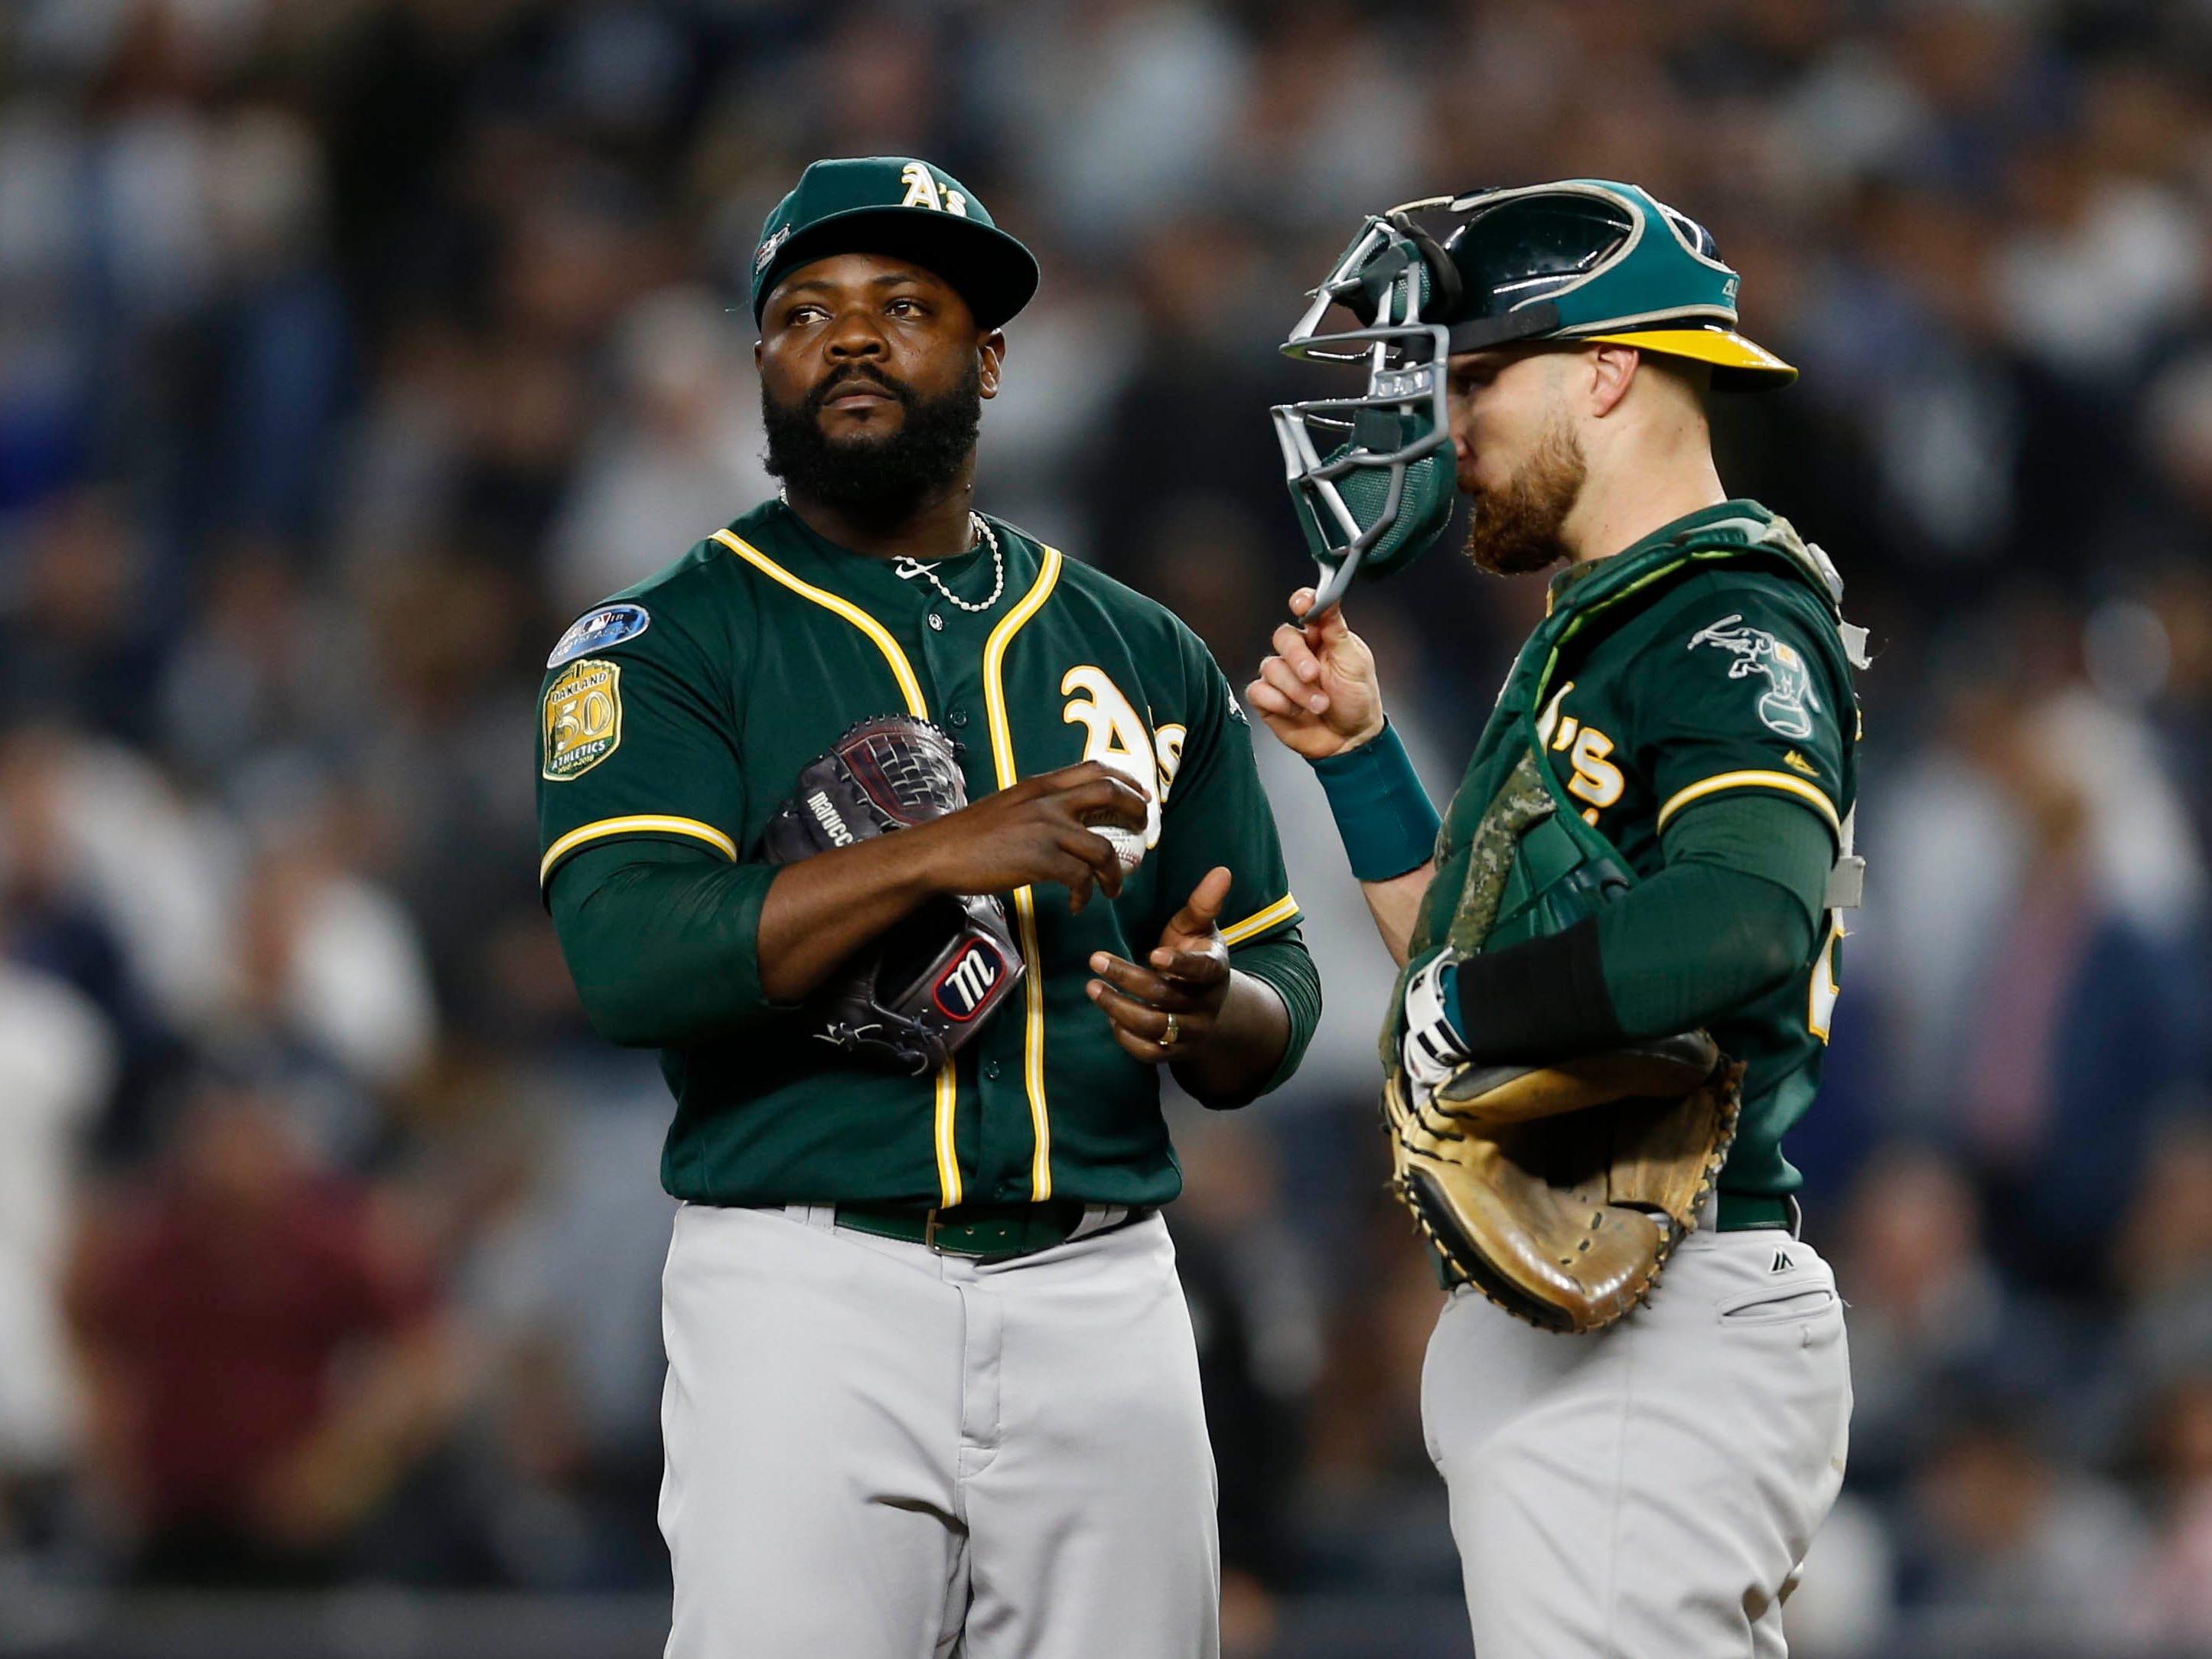 Oct 3, 2018; Bronx, NY, USA; Oakland Athletics Fernando Rodney (56) and catcher Jonathan Lucroy (21) meet at the mound during the sixth inning against the New York Yankees  in the 2018 American League wild card playoff baseball game at Yankee Stadium. Mandatory Credit: Adam Hunger-USA TODAY Sports